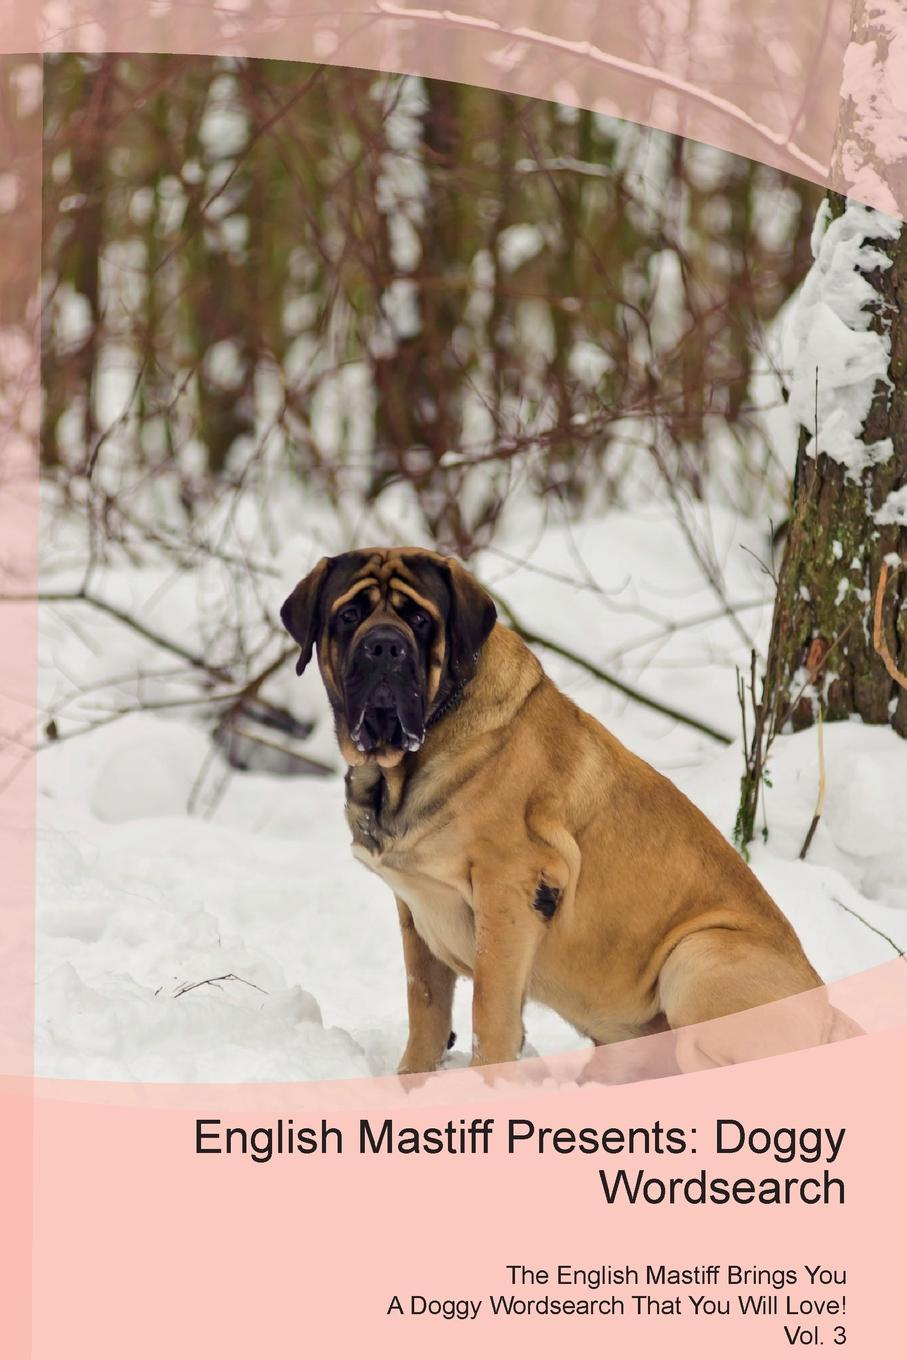 Doggy Puzzles English Mastiff Presents. Wordsearch The Brings You A That Will Love! Vol. 3